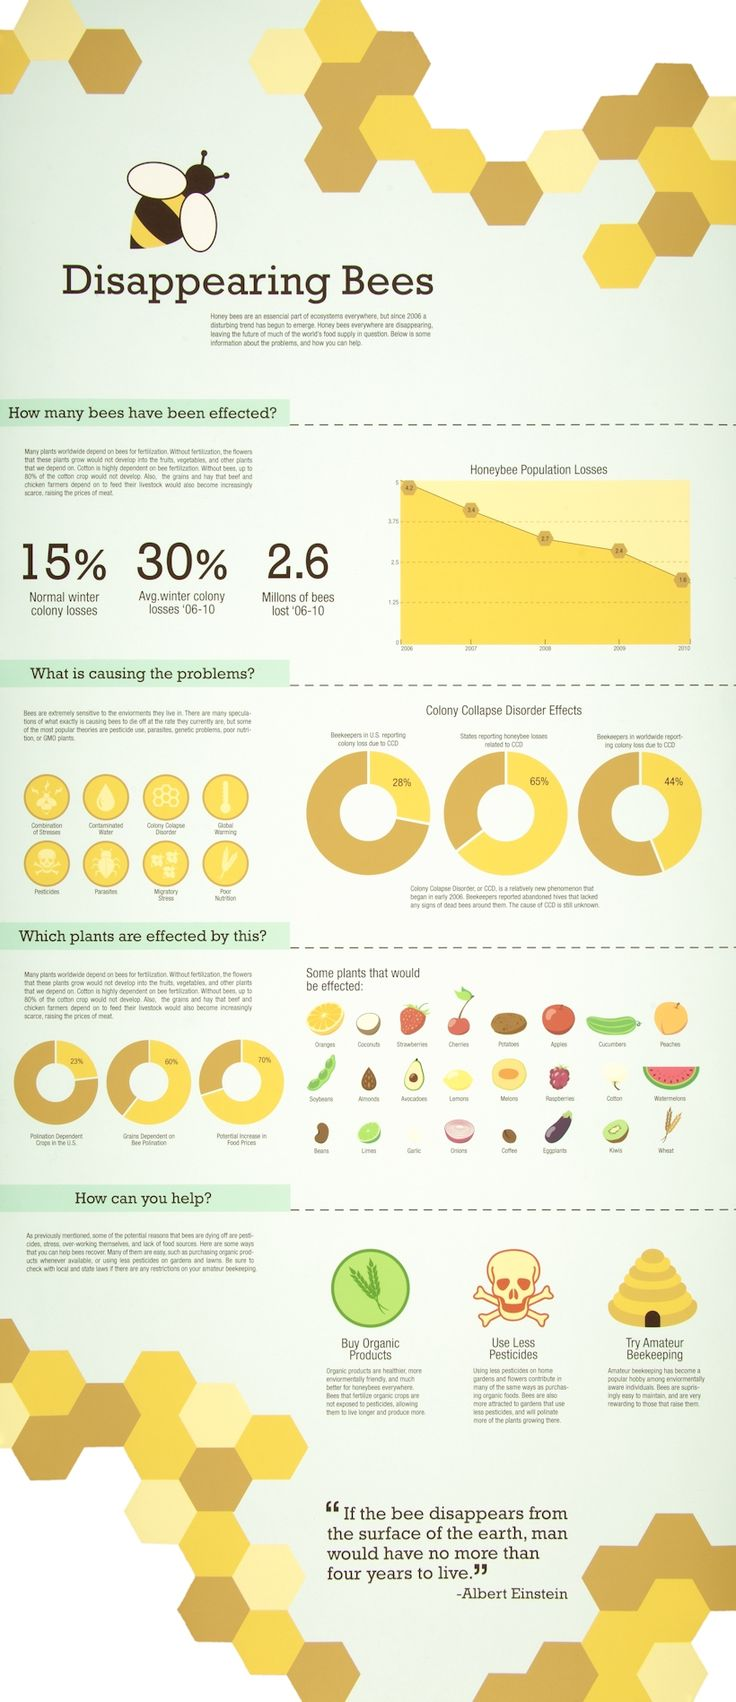 This information graphic is really good, the shades of yellow work well and are relevant to the poster.